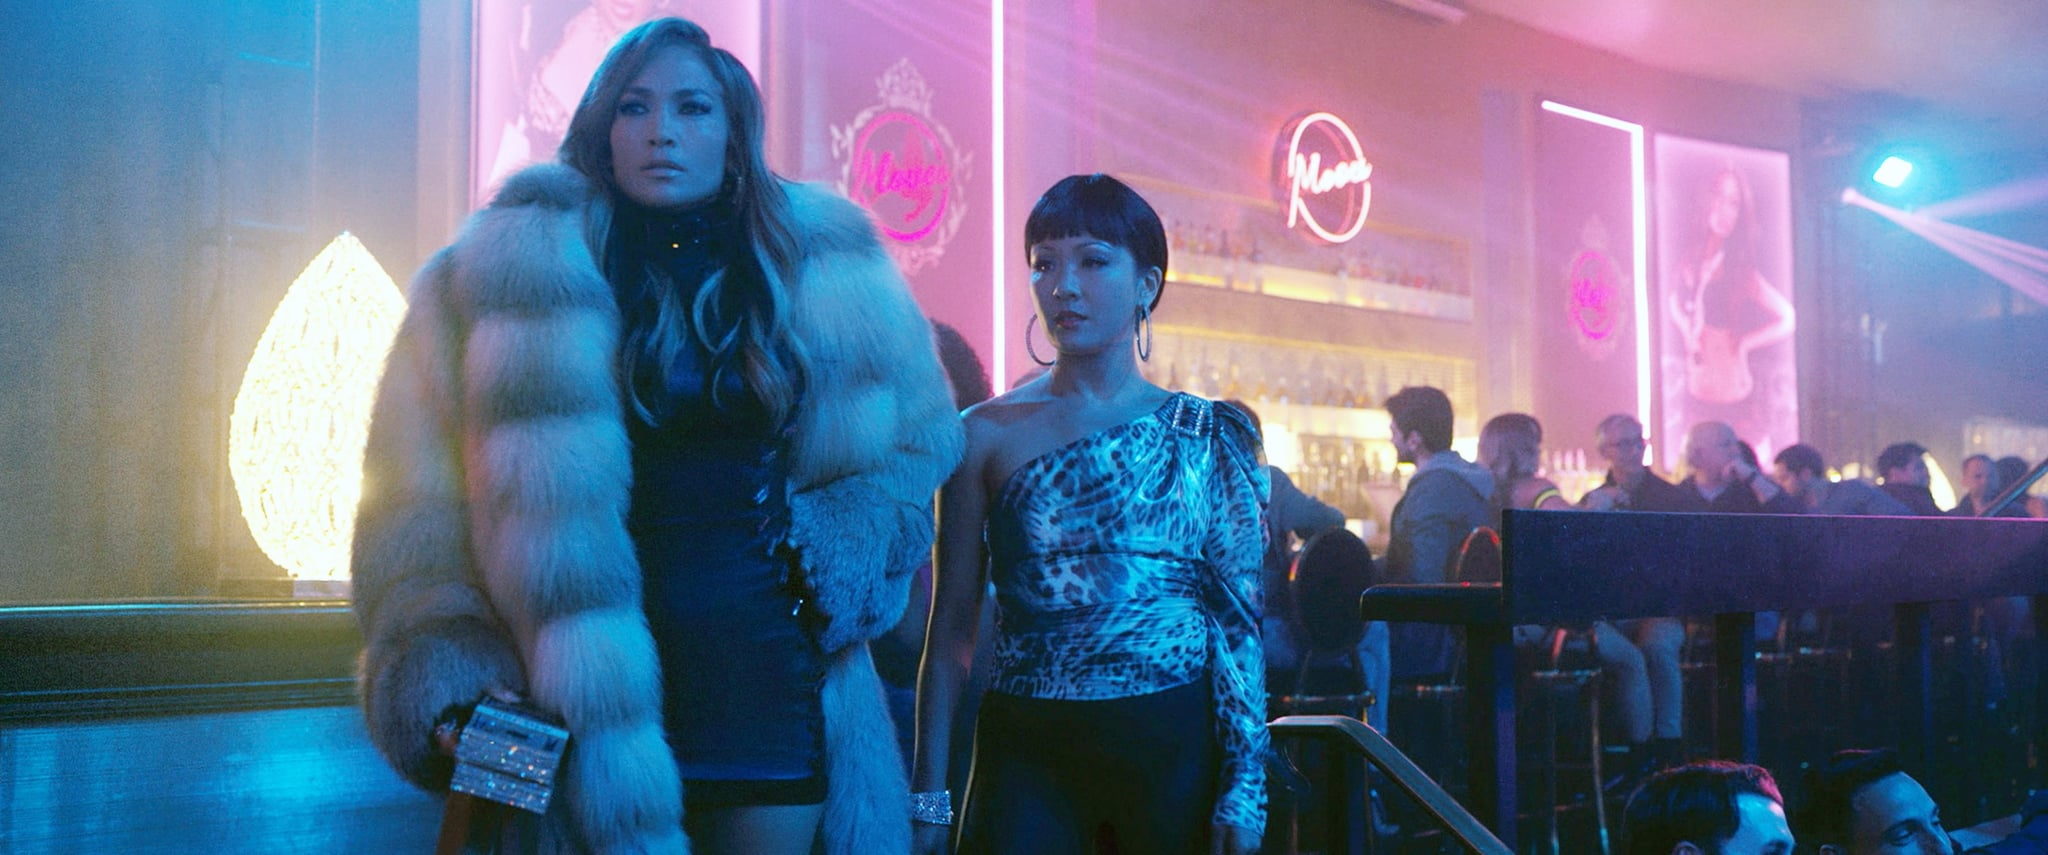 HUSTLERS, from left: Jennifer Lopez, Constance Wu, 2019.  STX Entertainment / courtesy Everett Collection